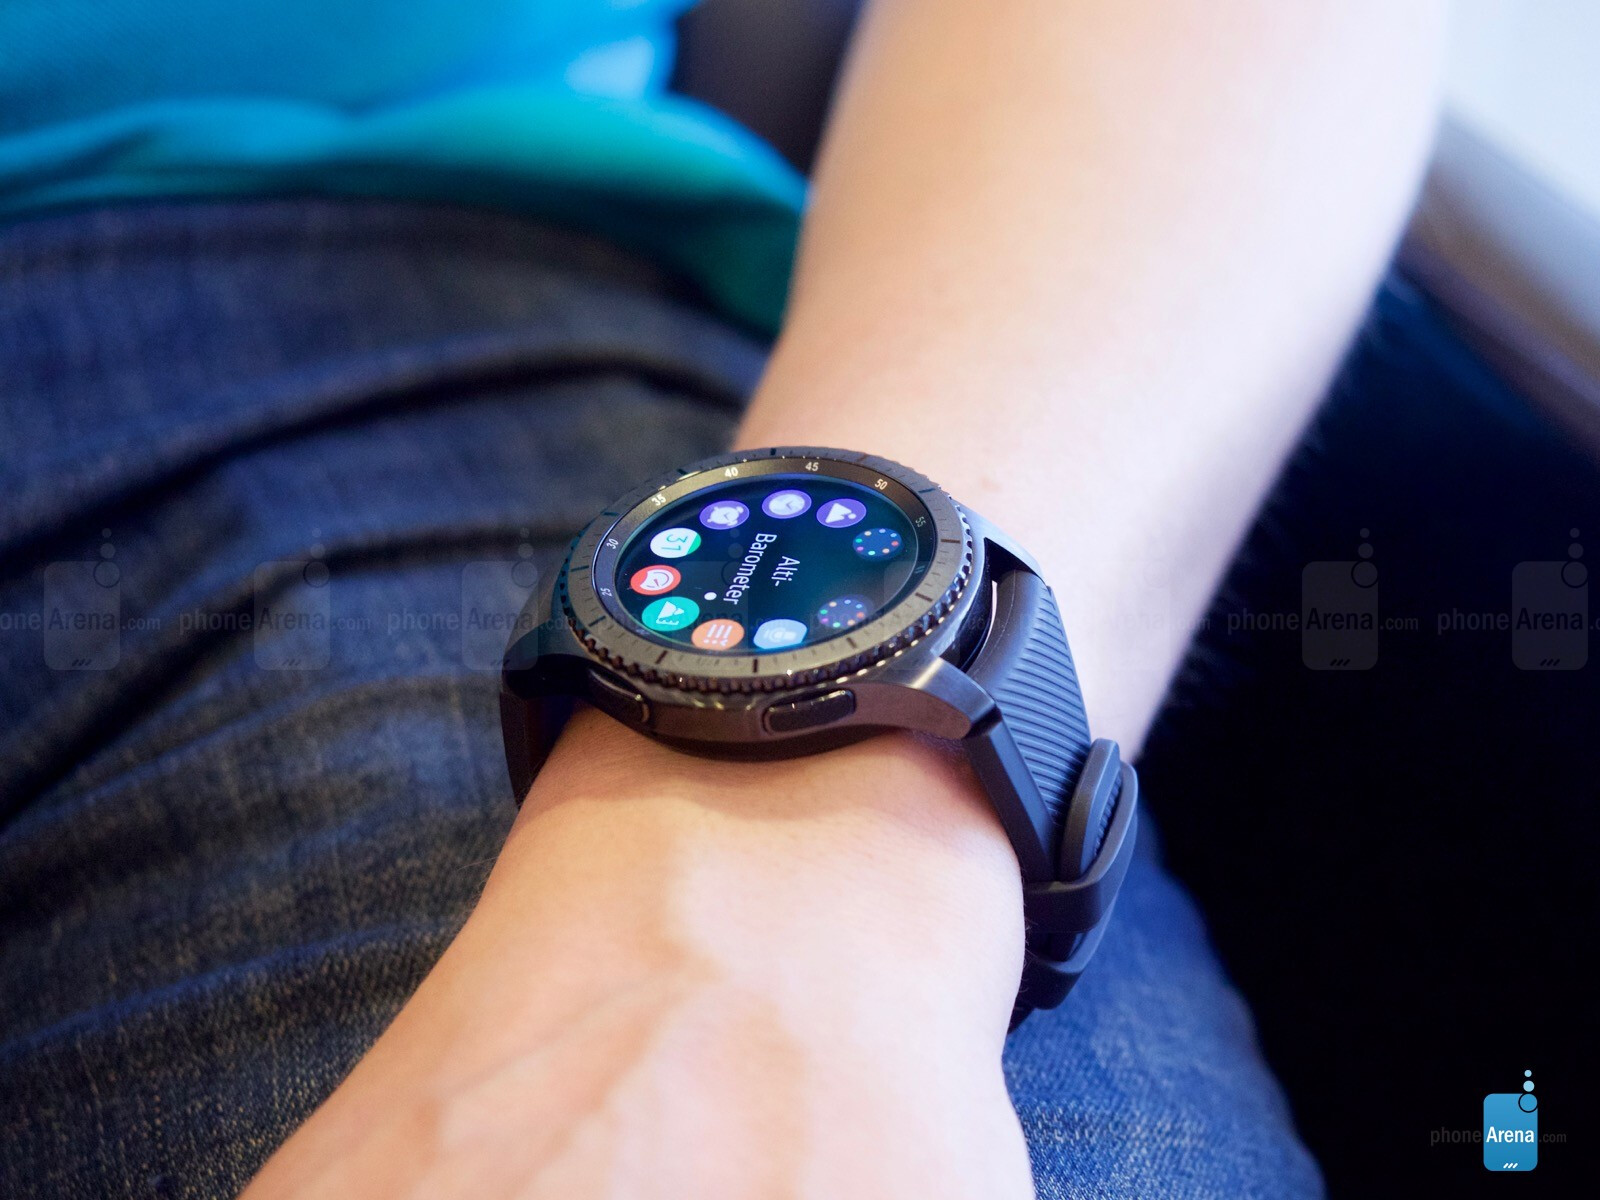 Samsung Gear S2 is here to stay